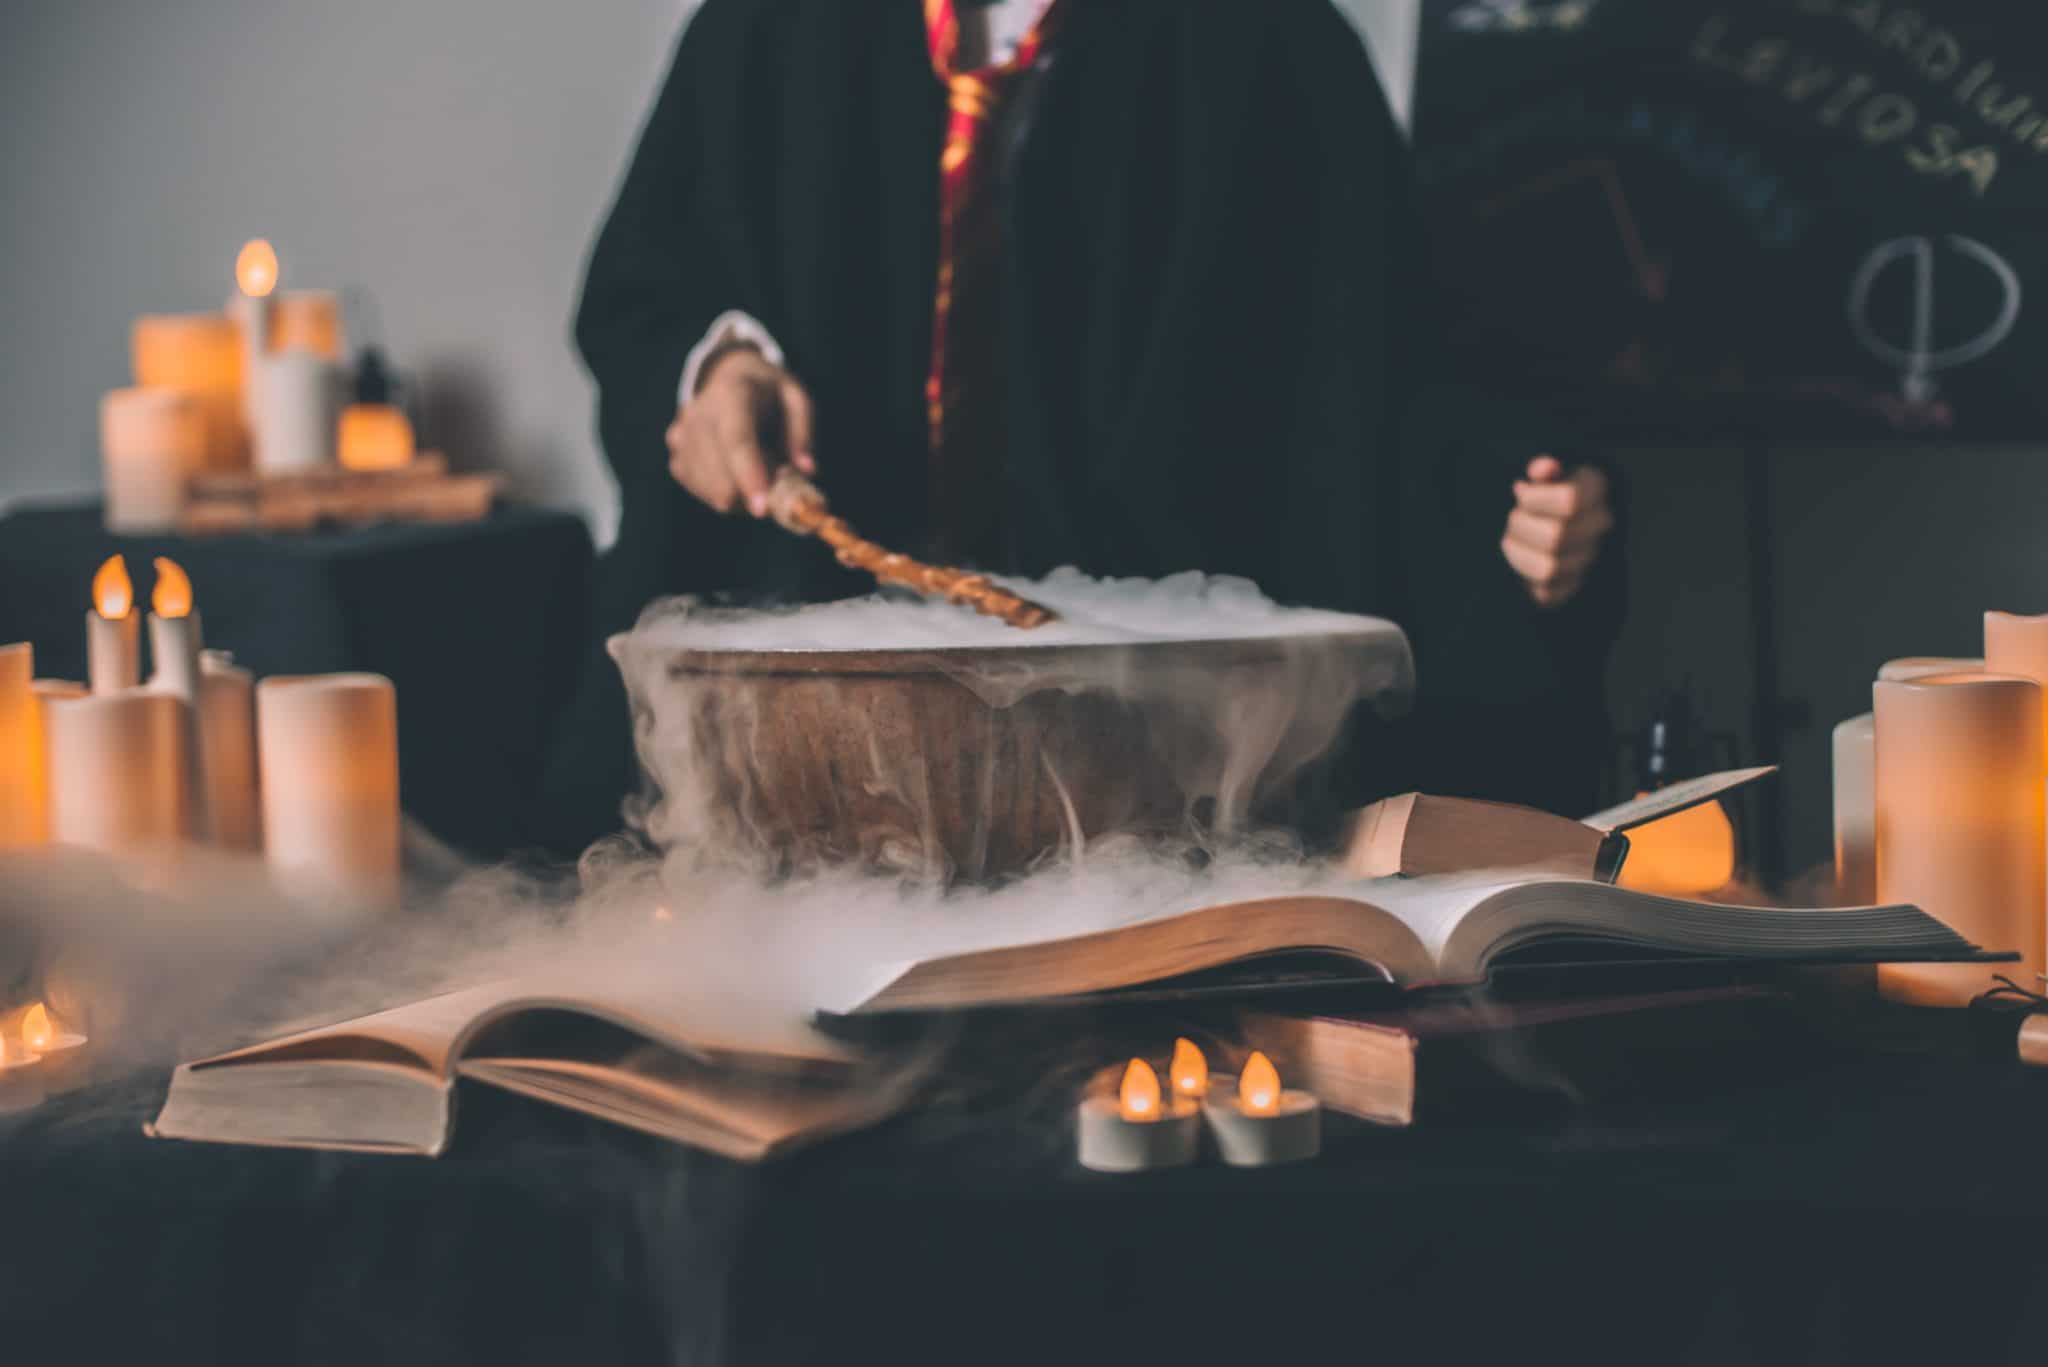 magician working spell over cauldron